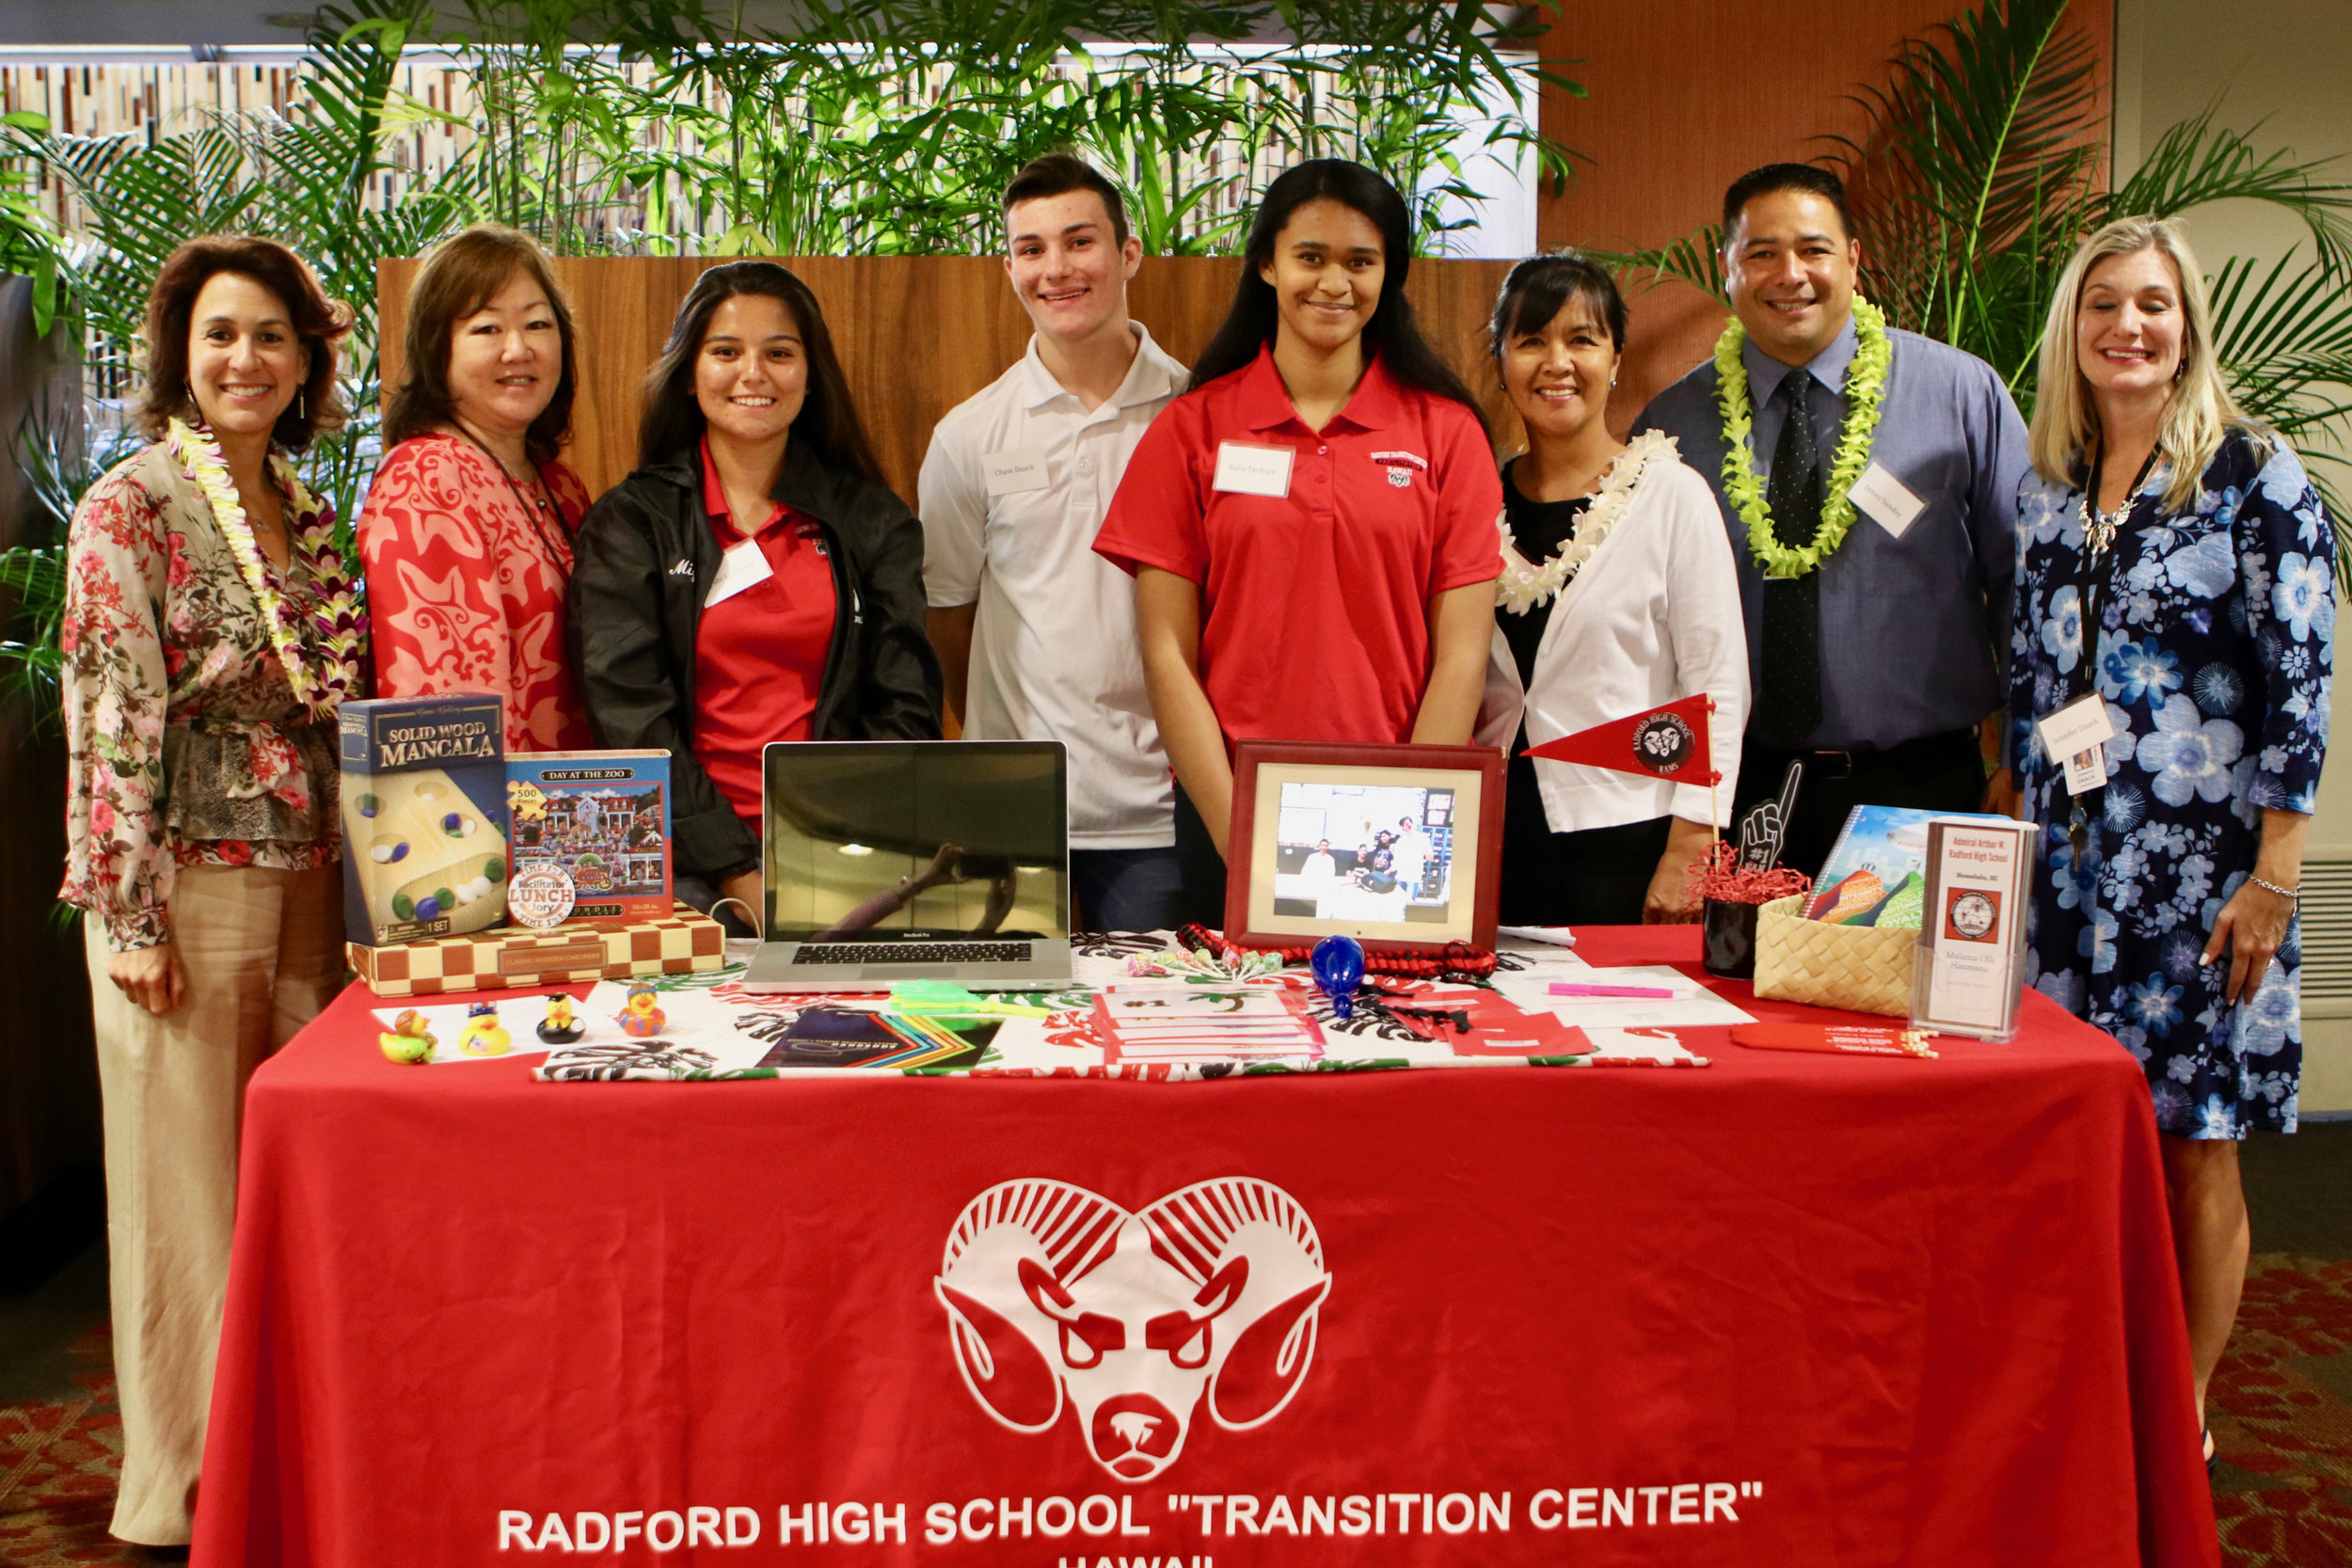 Radford High School returned to the conference this year with lots of resources at their resource table.